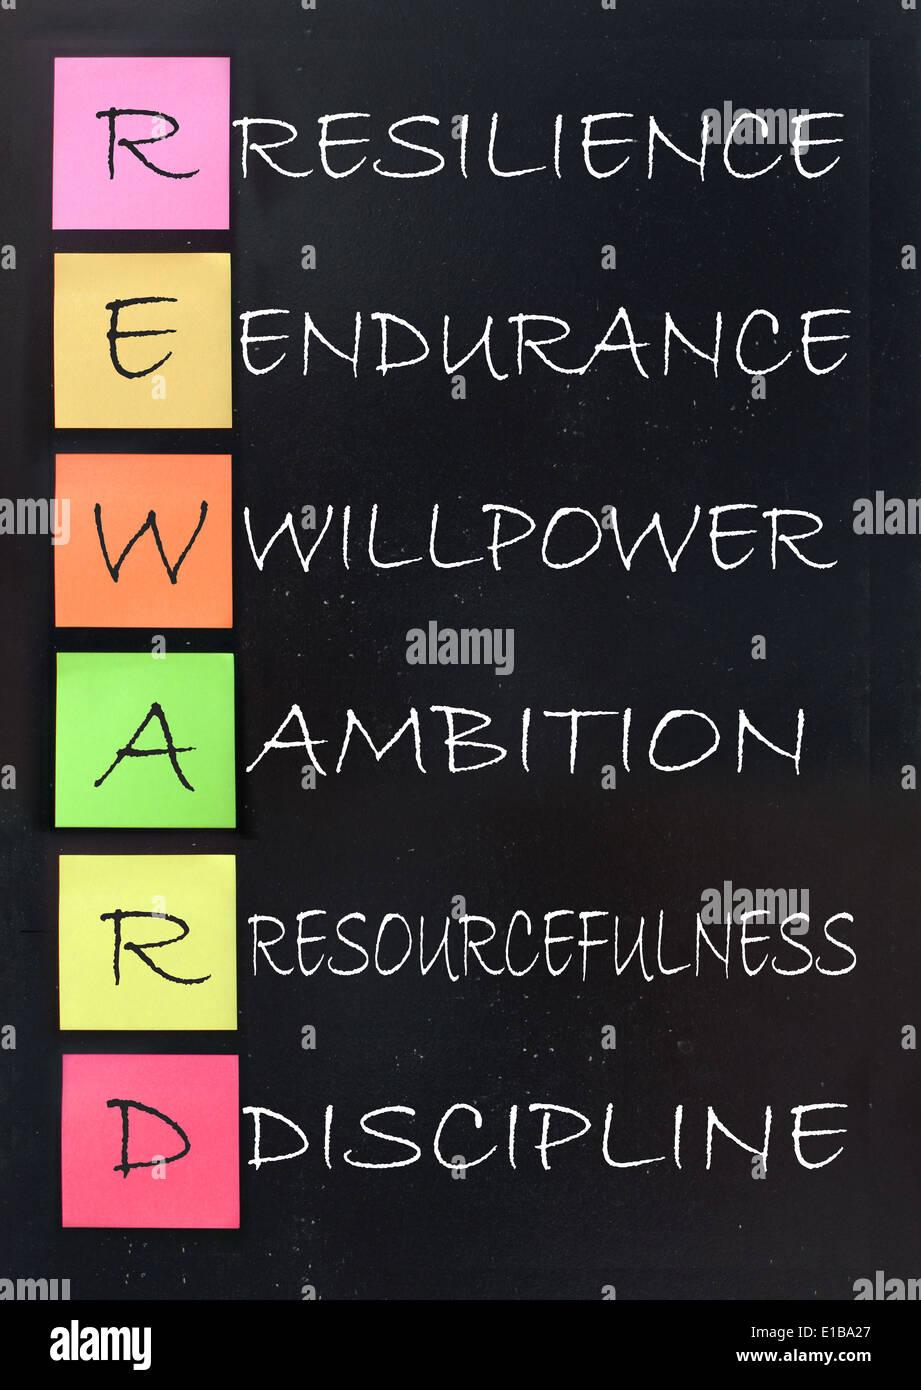 Reward acronym handwritten on a blackboard - Stock Image